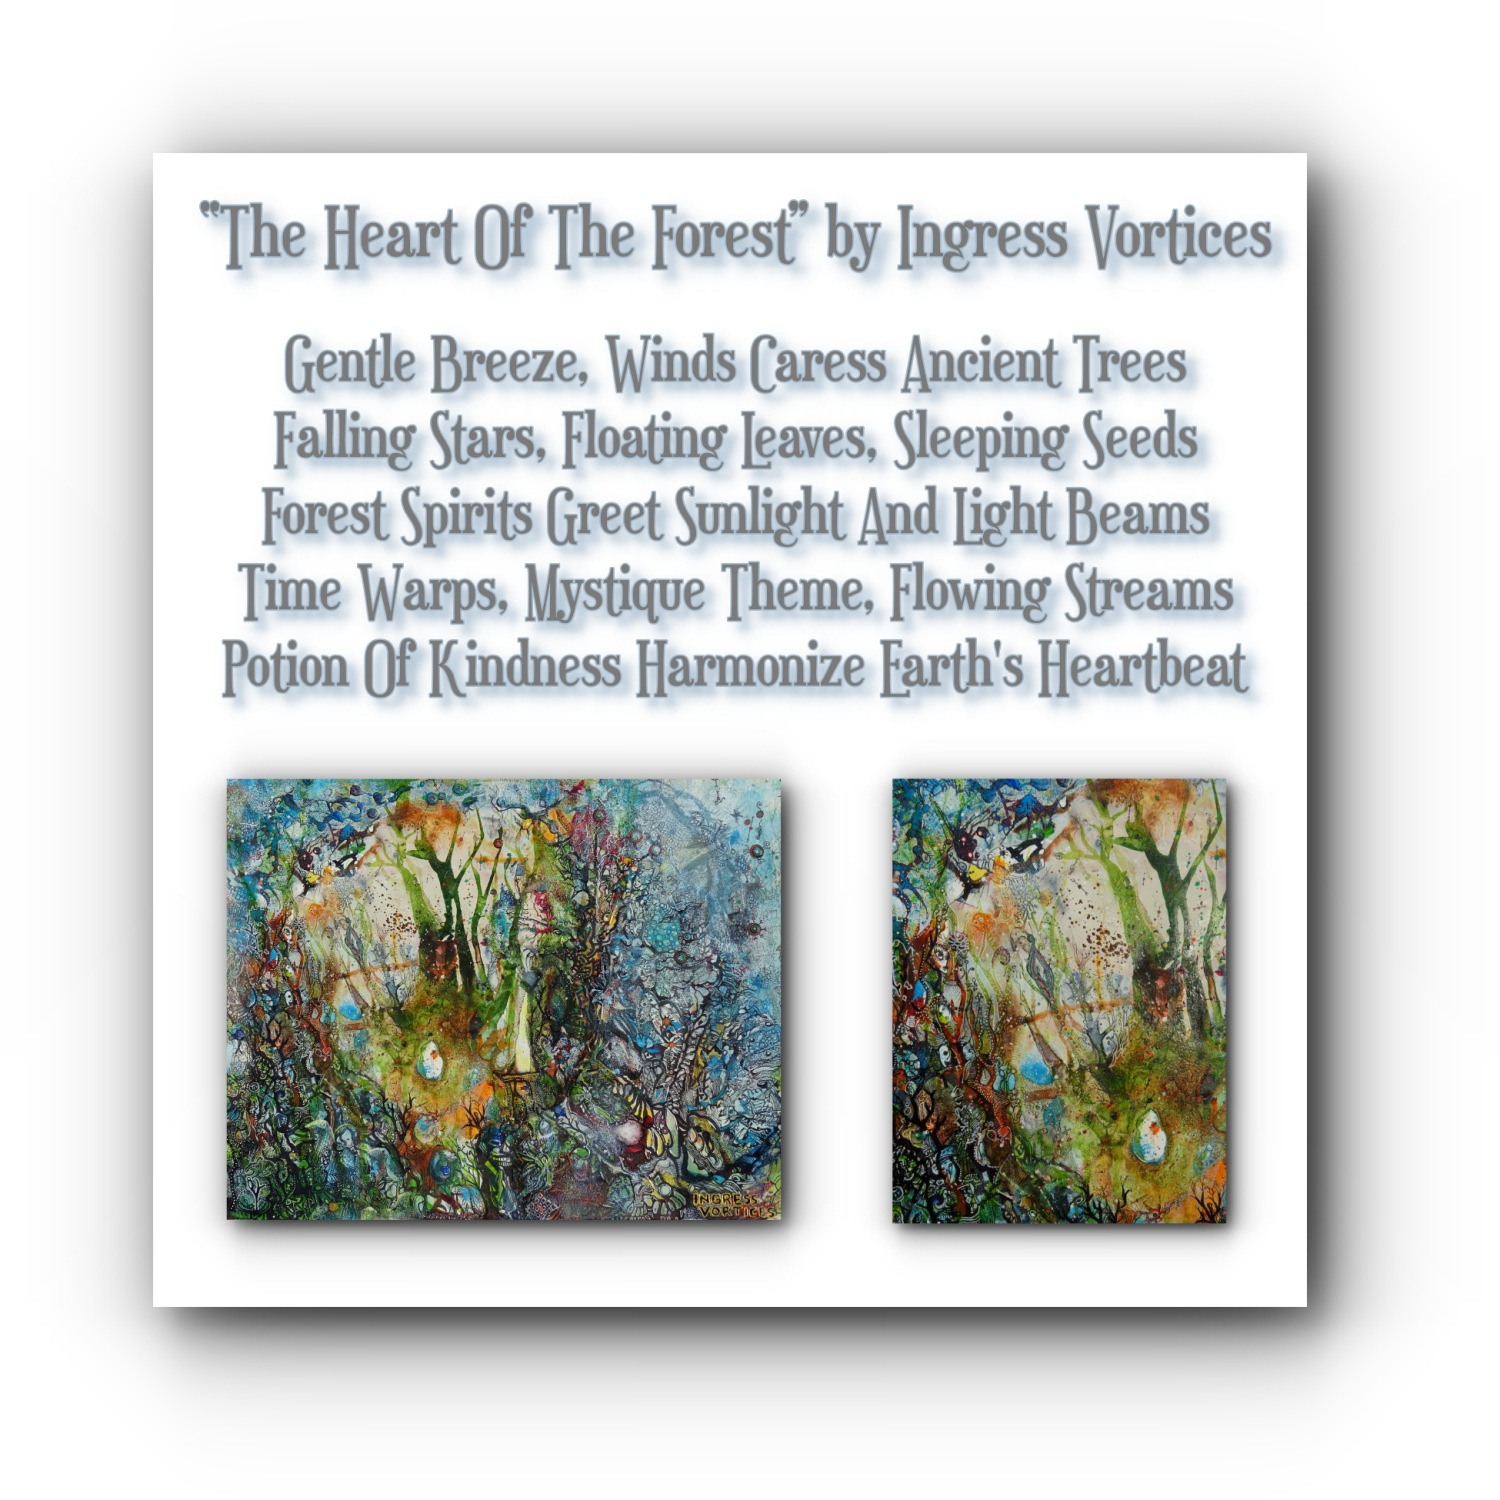 painting-collage-poem-heart-forest-artists-ingress-vortices.jpg